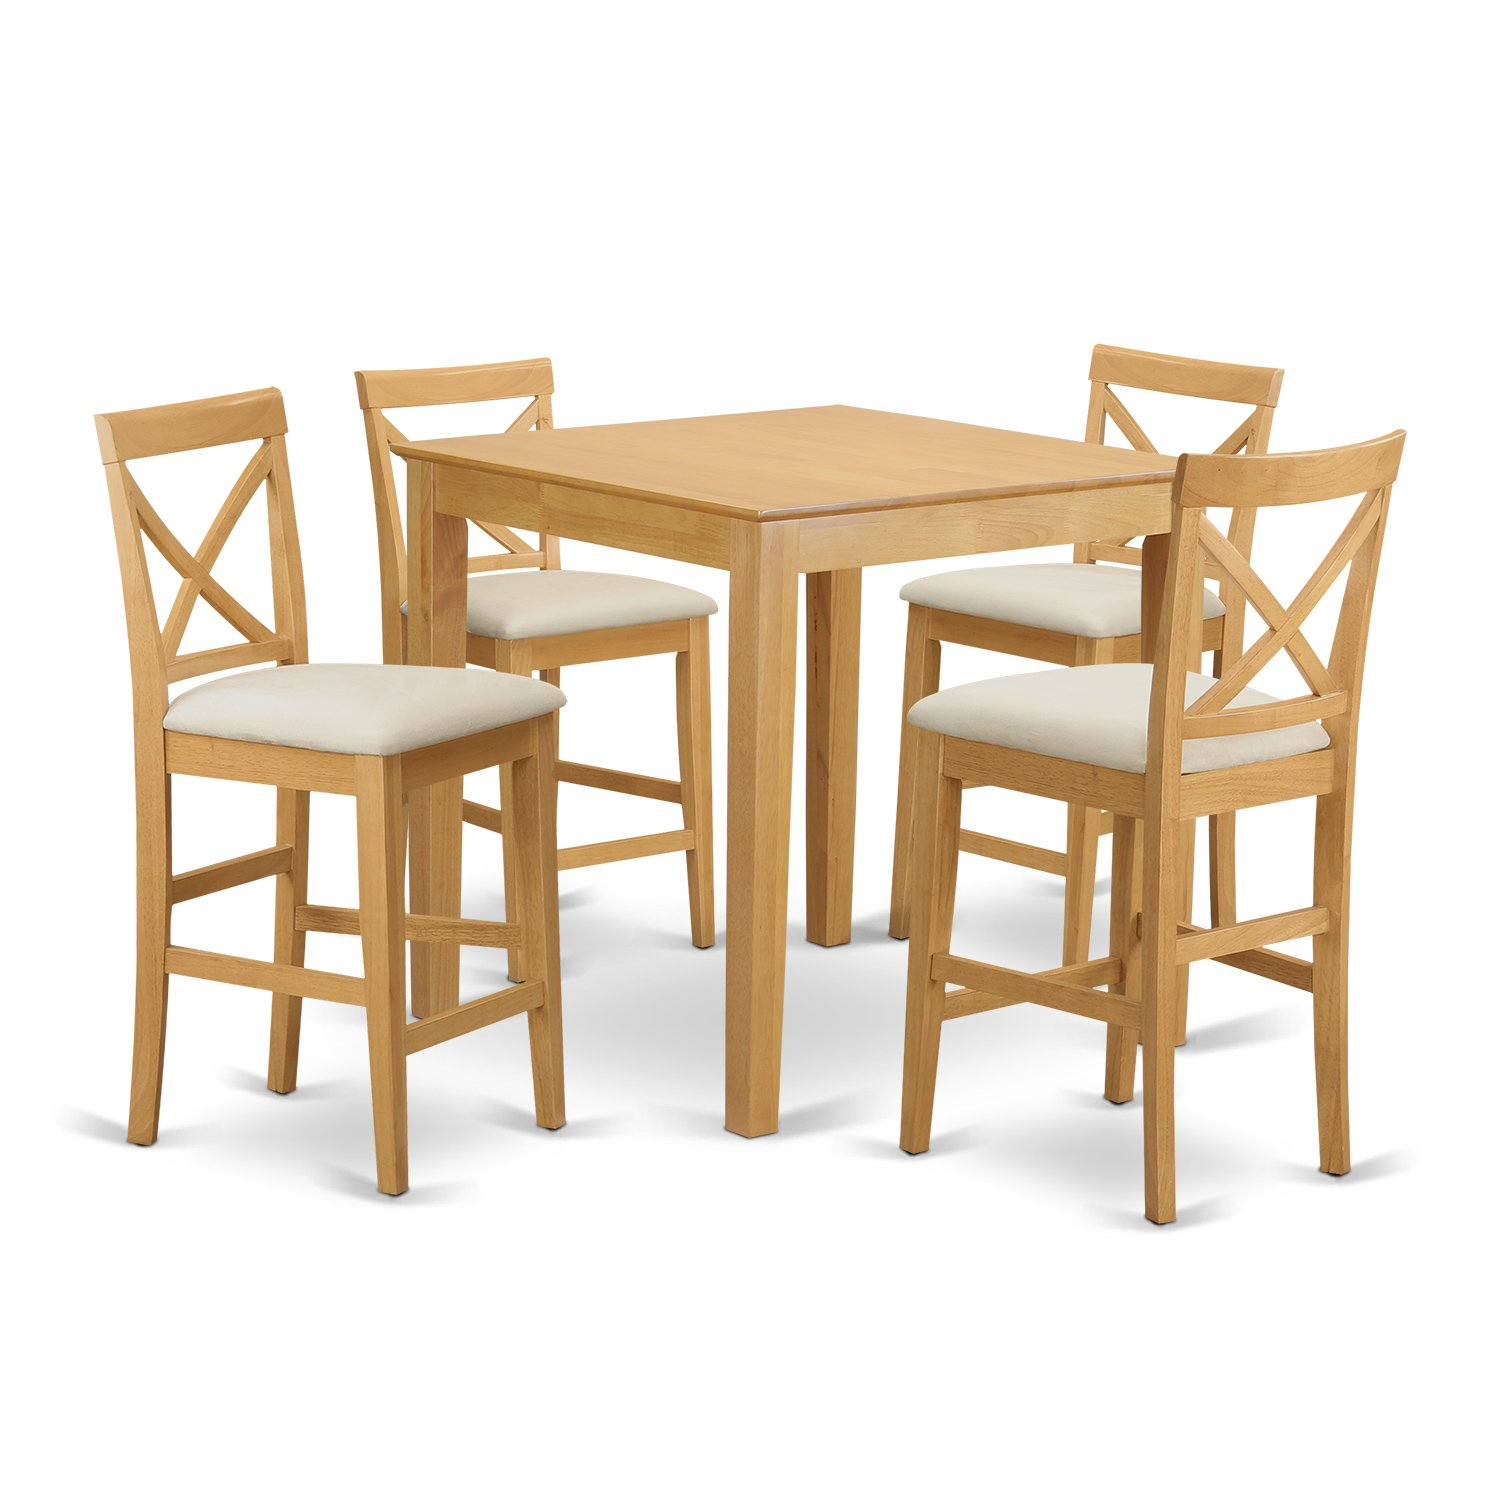 East West Furniture PUBS5-OAK-C 5-Piece Counter Height Table Set - Oak Finish